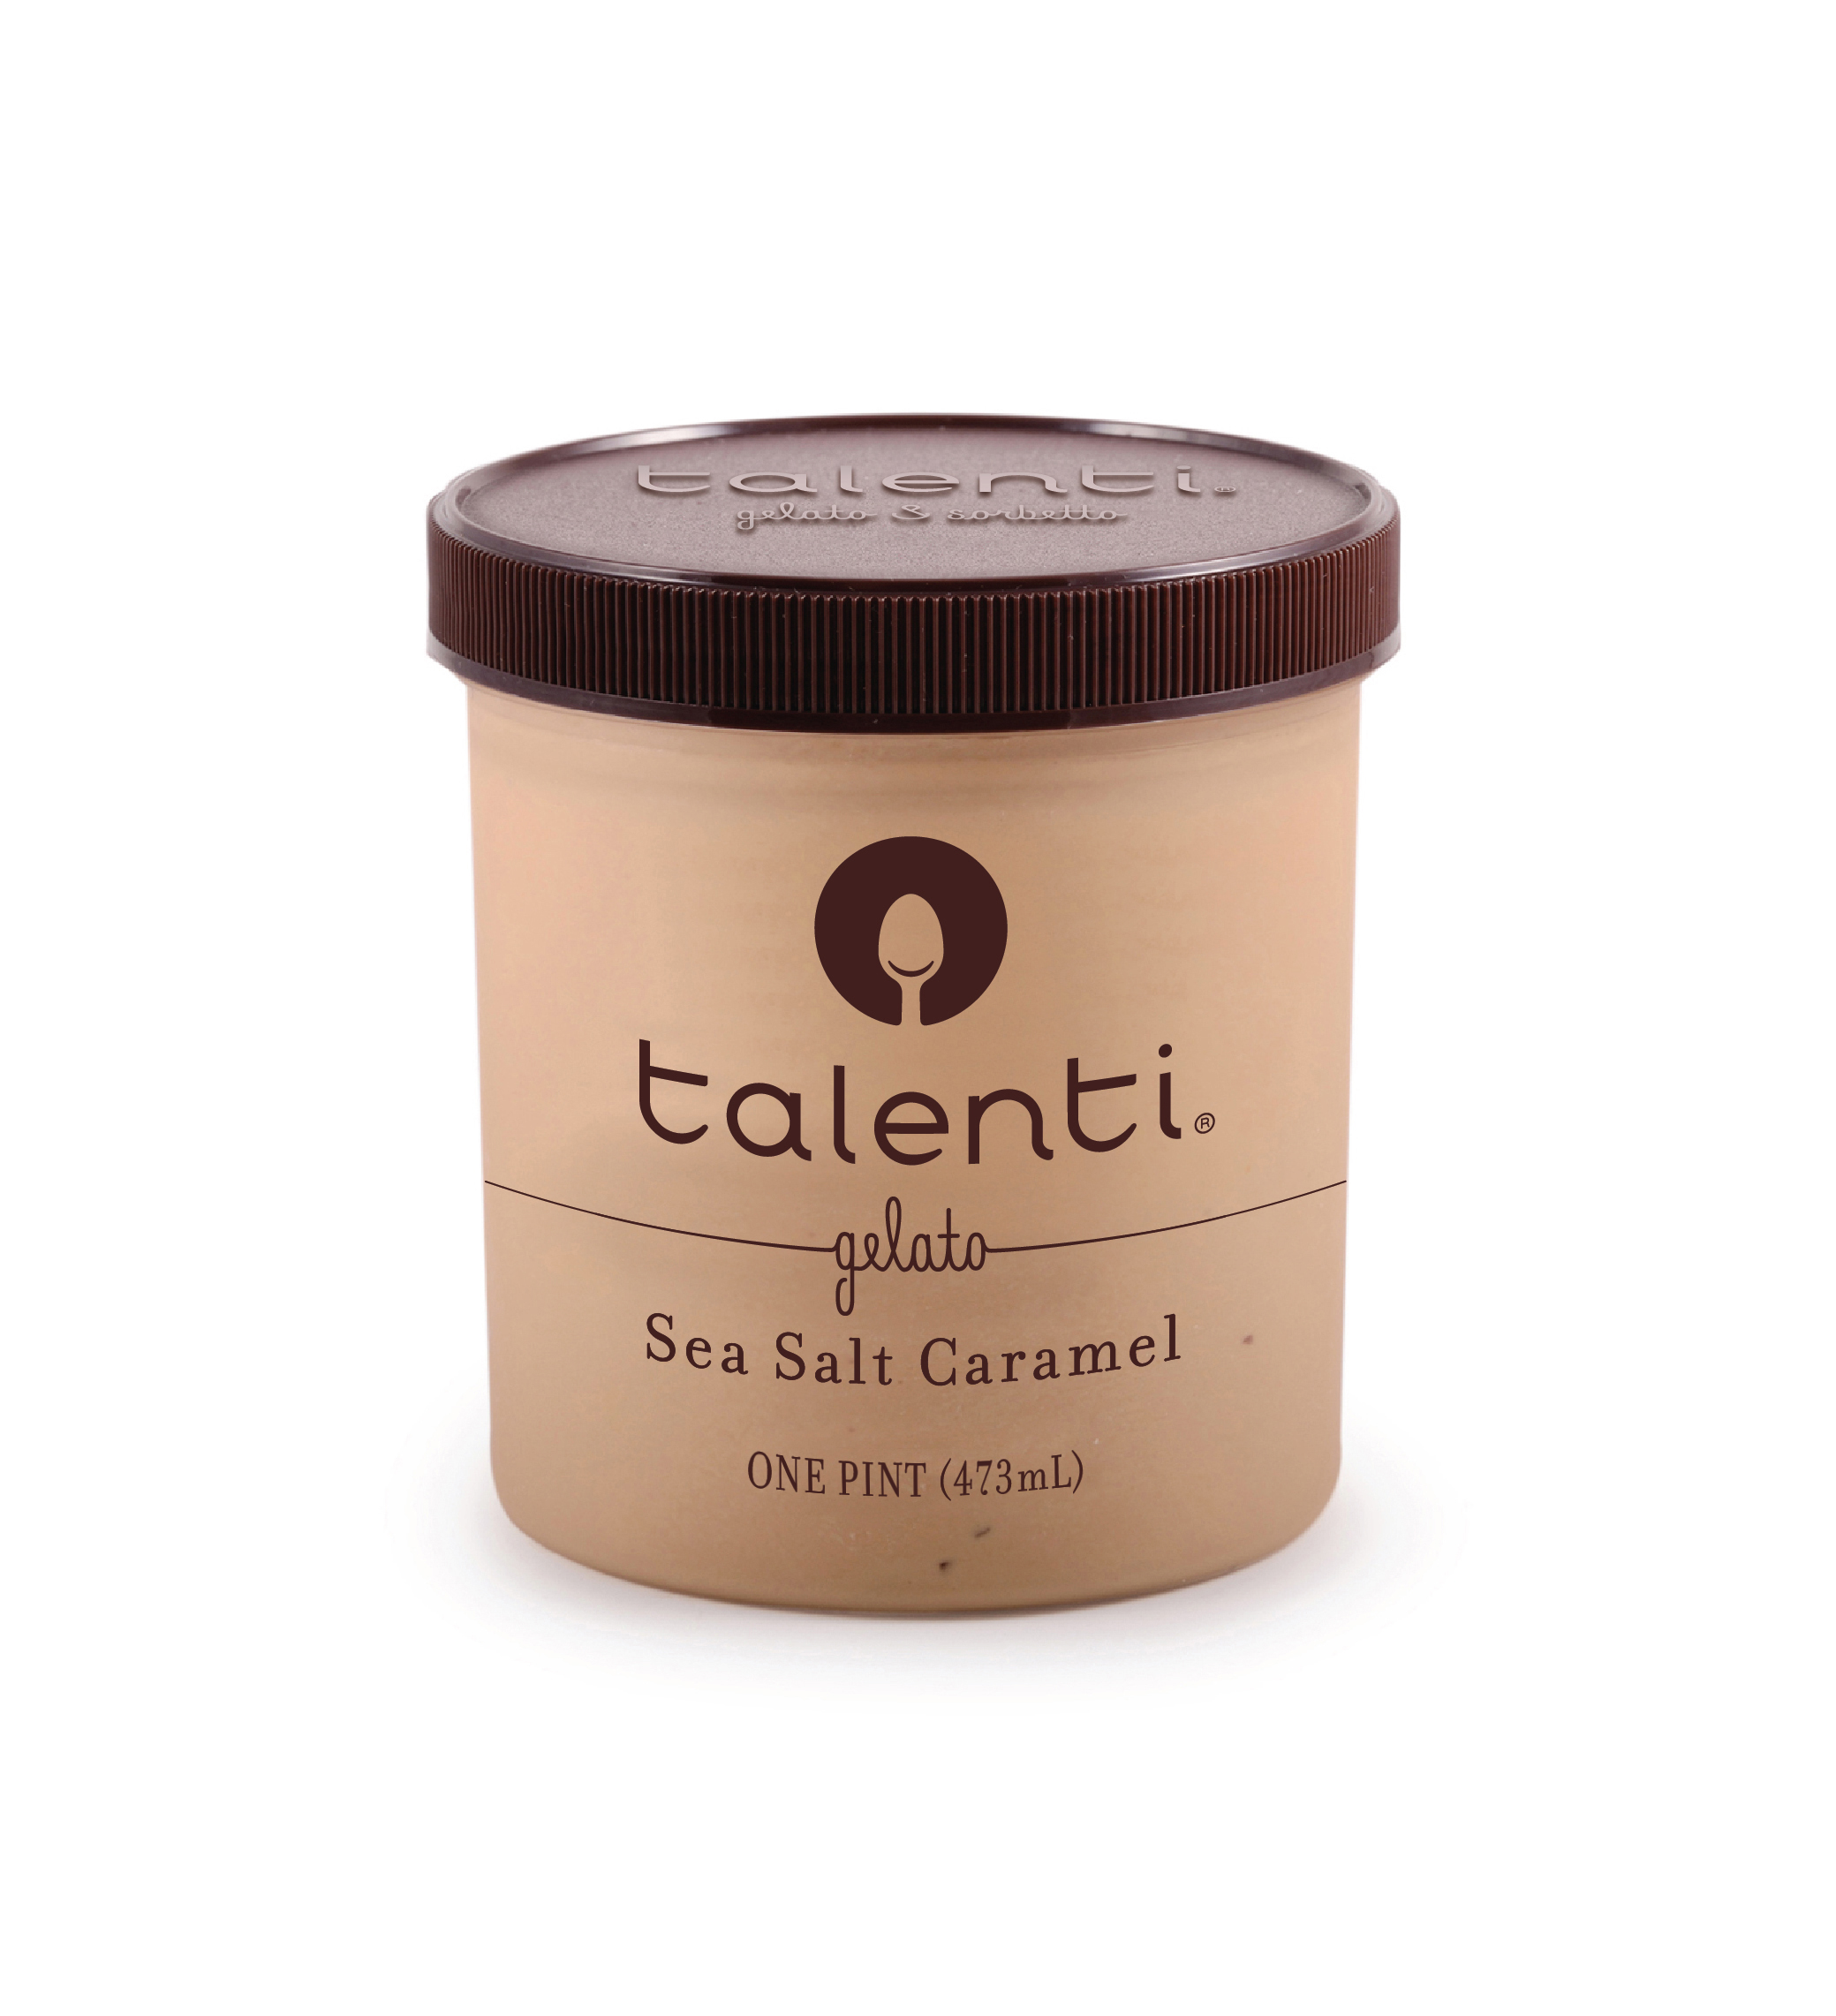 Talenti® Gelato & Sorbetto Issues Allergy Alert for Limited Number of Jars of Talenti® Gelato & Sorbetto Sea Salt Caramel Gelato Due to Undeclared Peanut